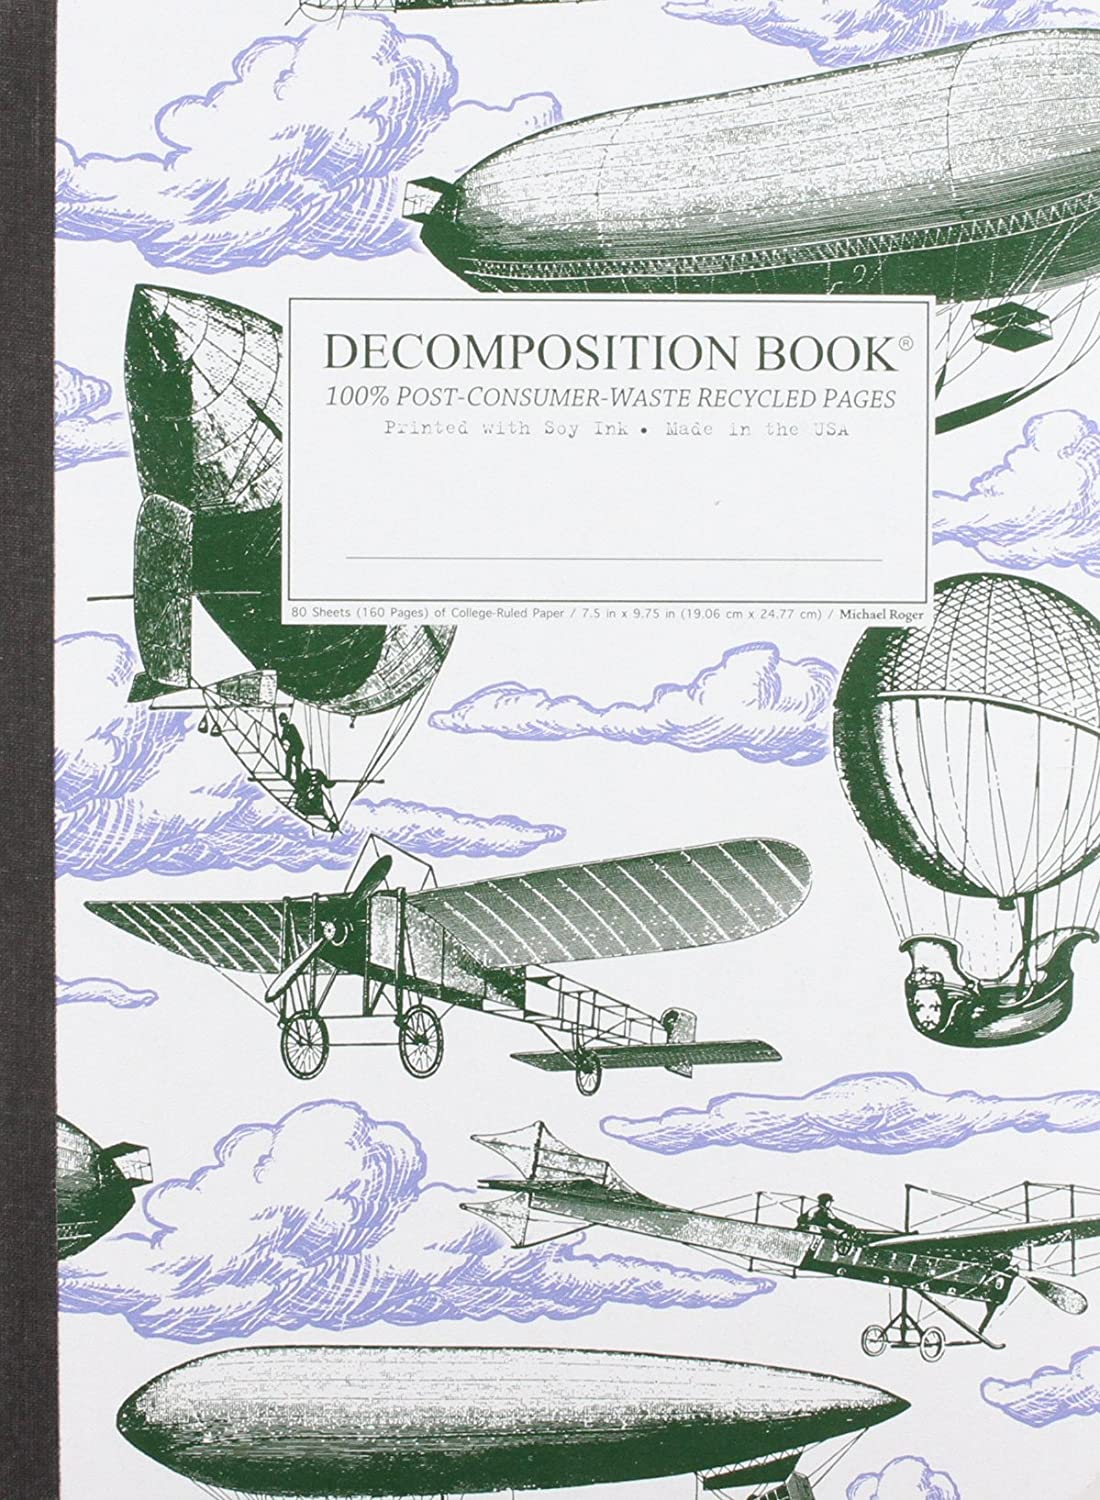 Airships Decomposition Book: College-Ruled Composition Notebook With 100% Post-Consumer-Waste Recycled Pages Michael Roger Michael Roger Inc Blank Books/Journals MARKETING PROMOTION